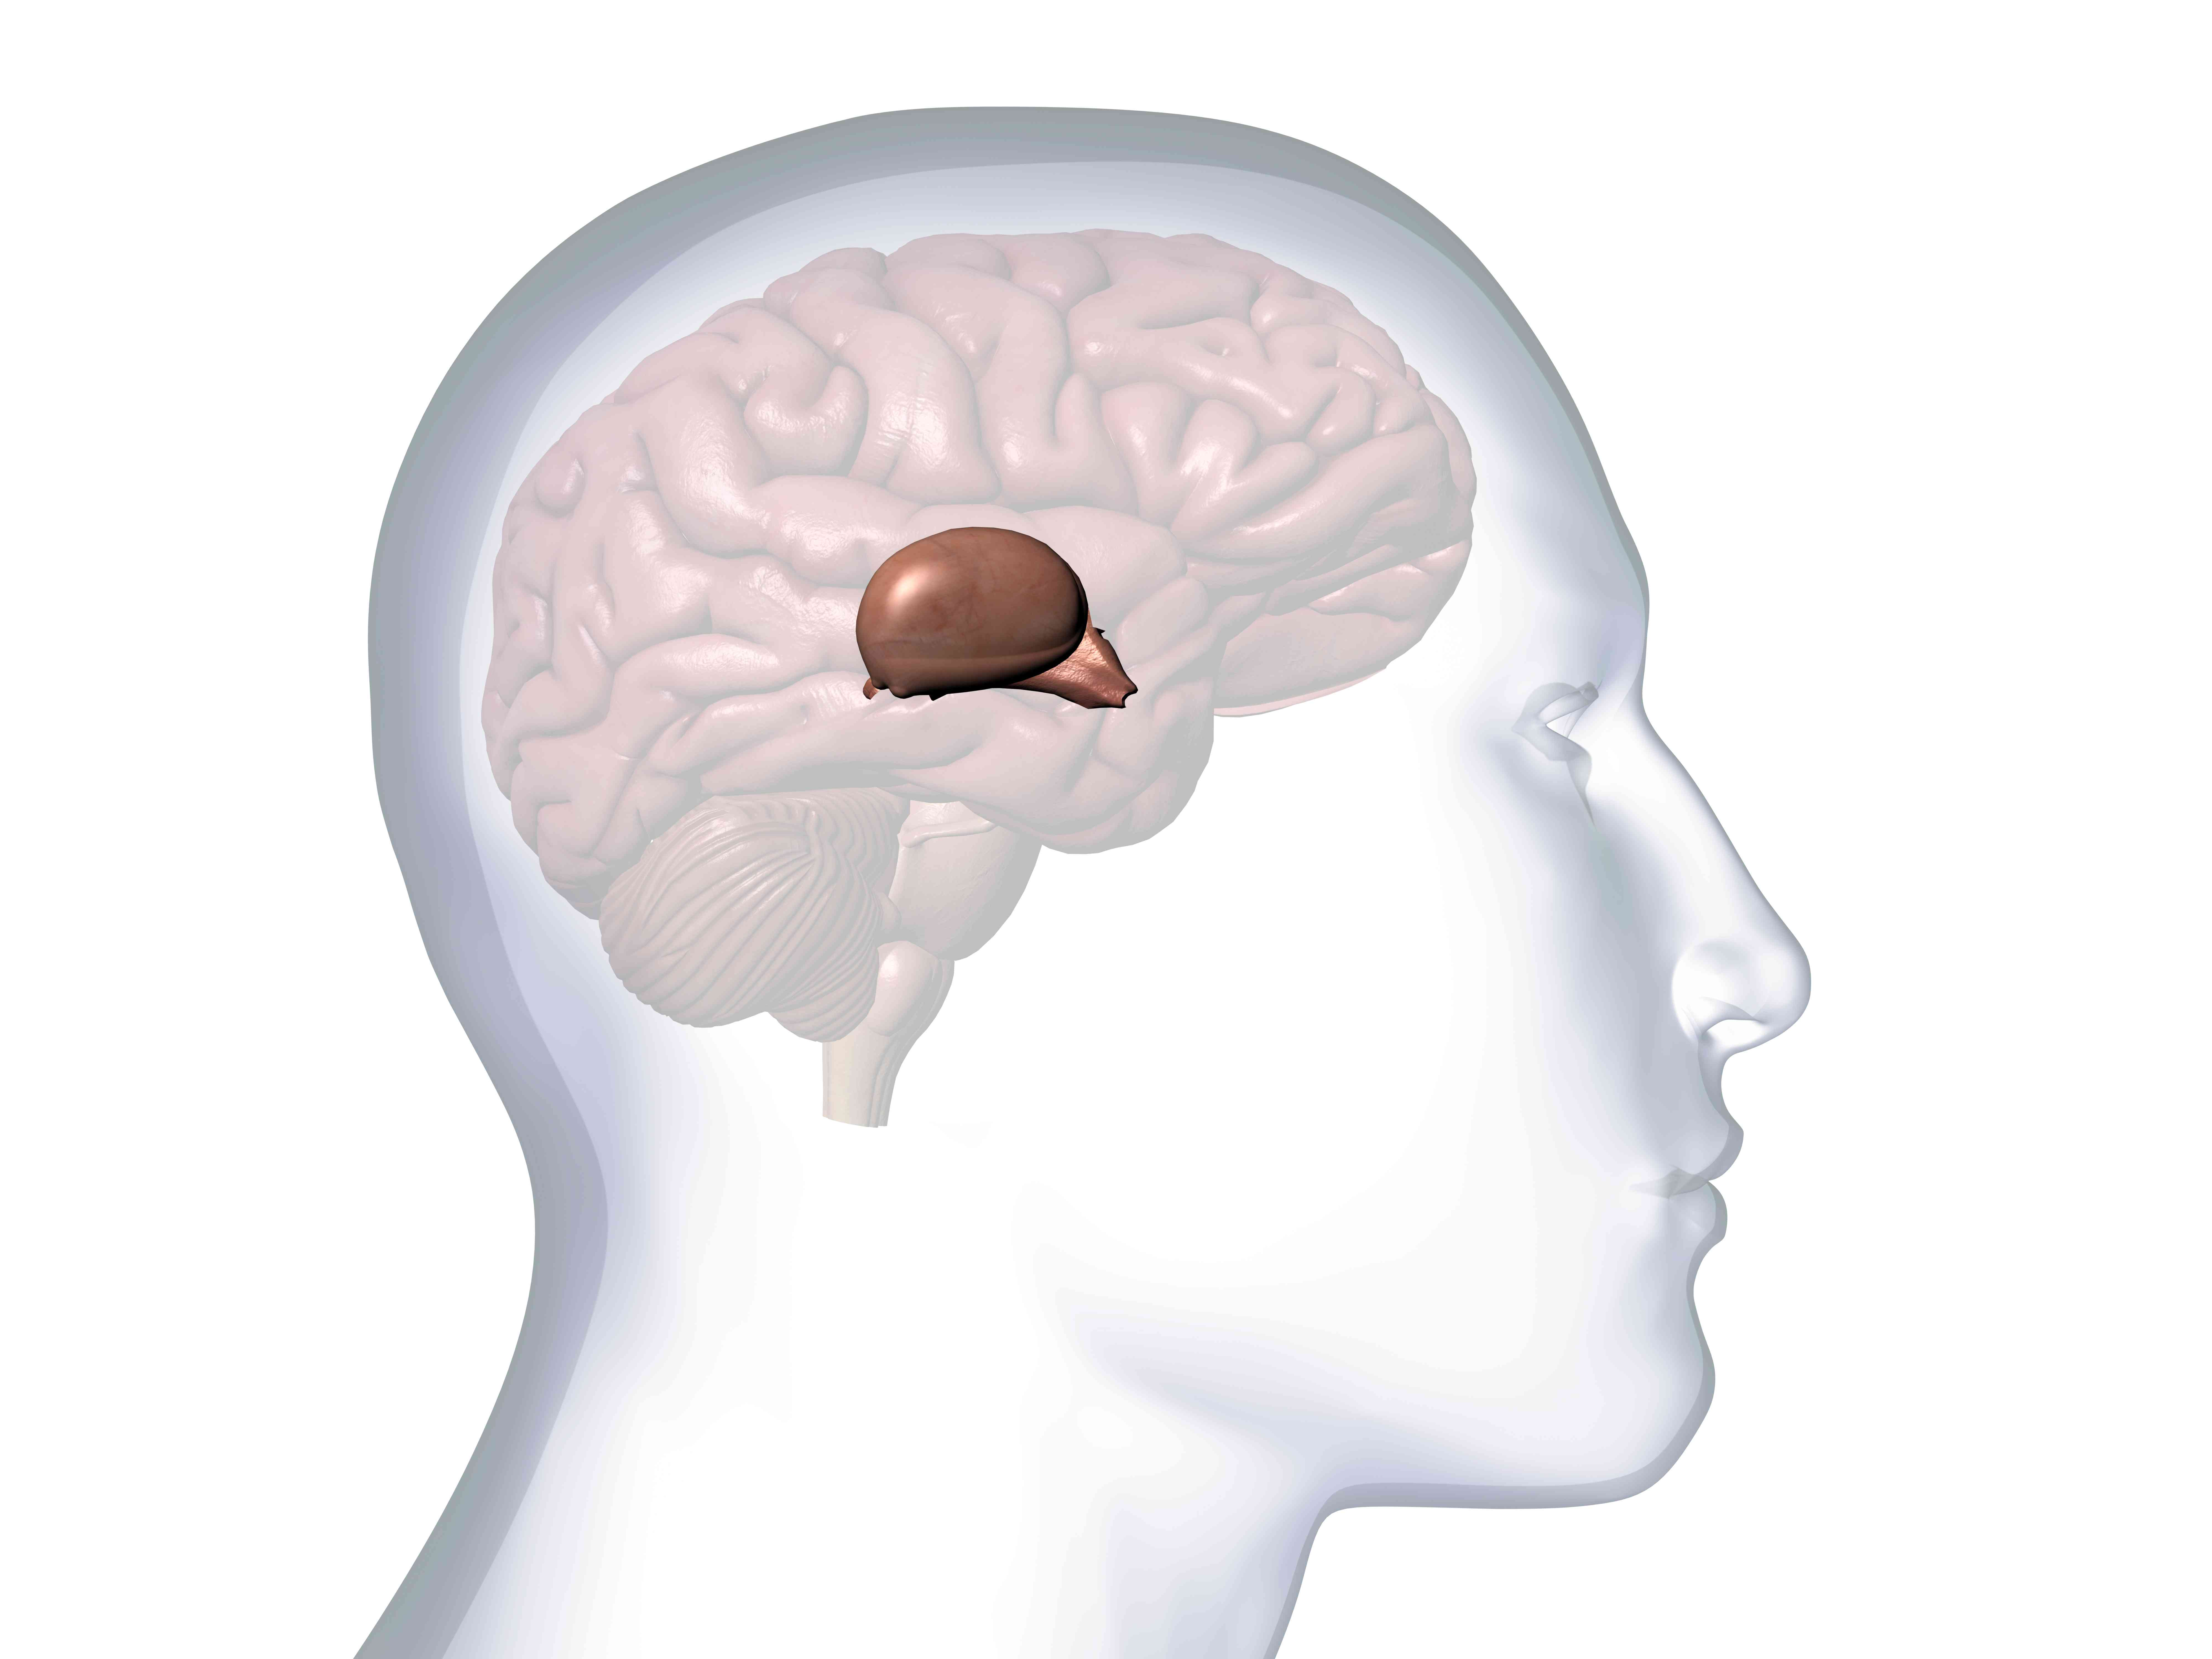 Profile of Male Head with Thalamus, Hypothalamus and Pineal Gland Anatomy